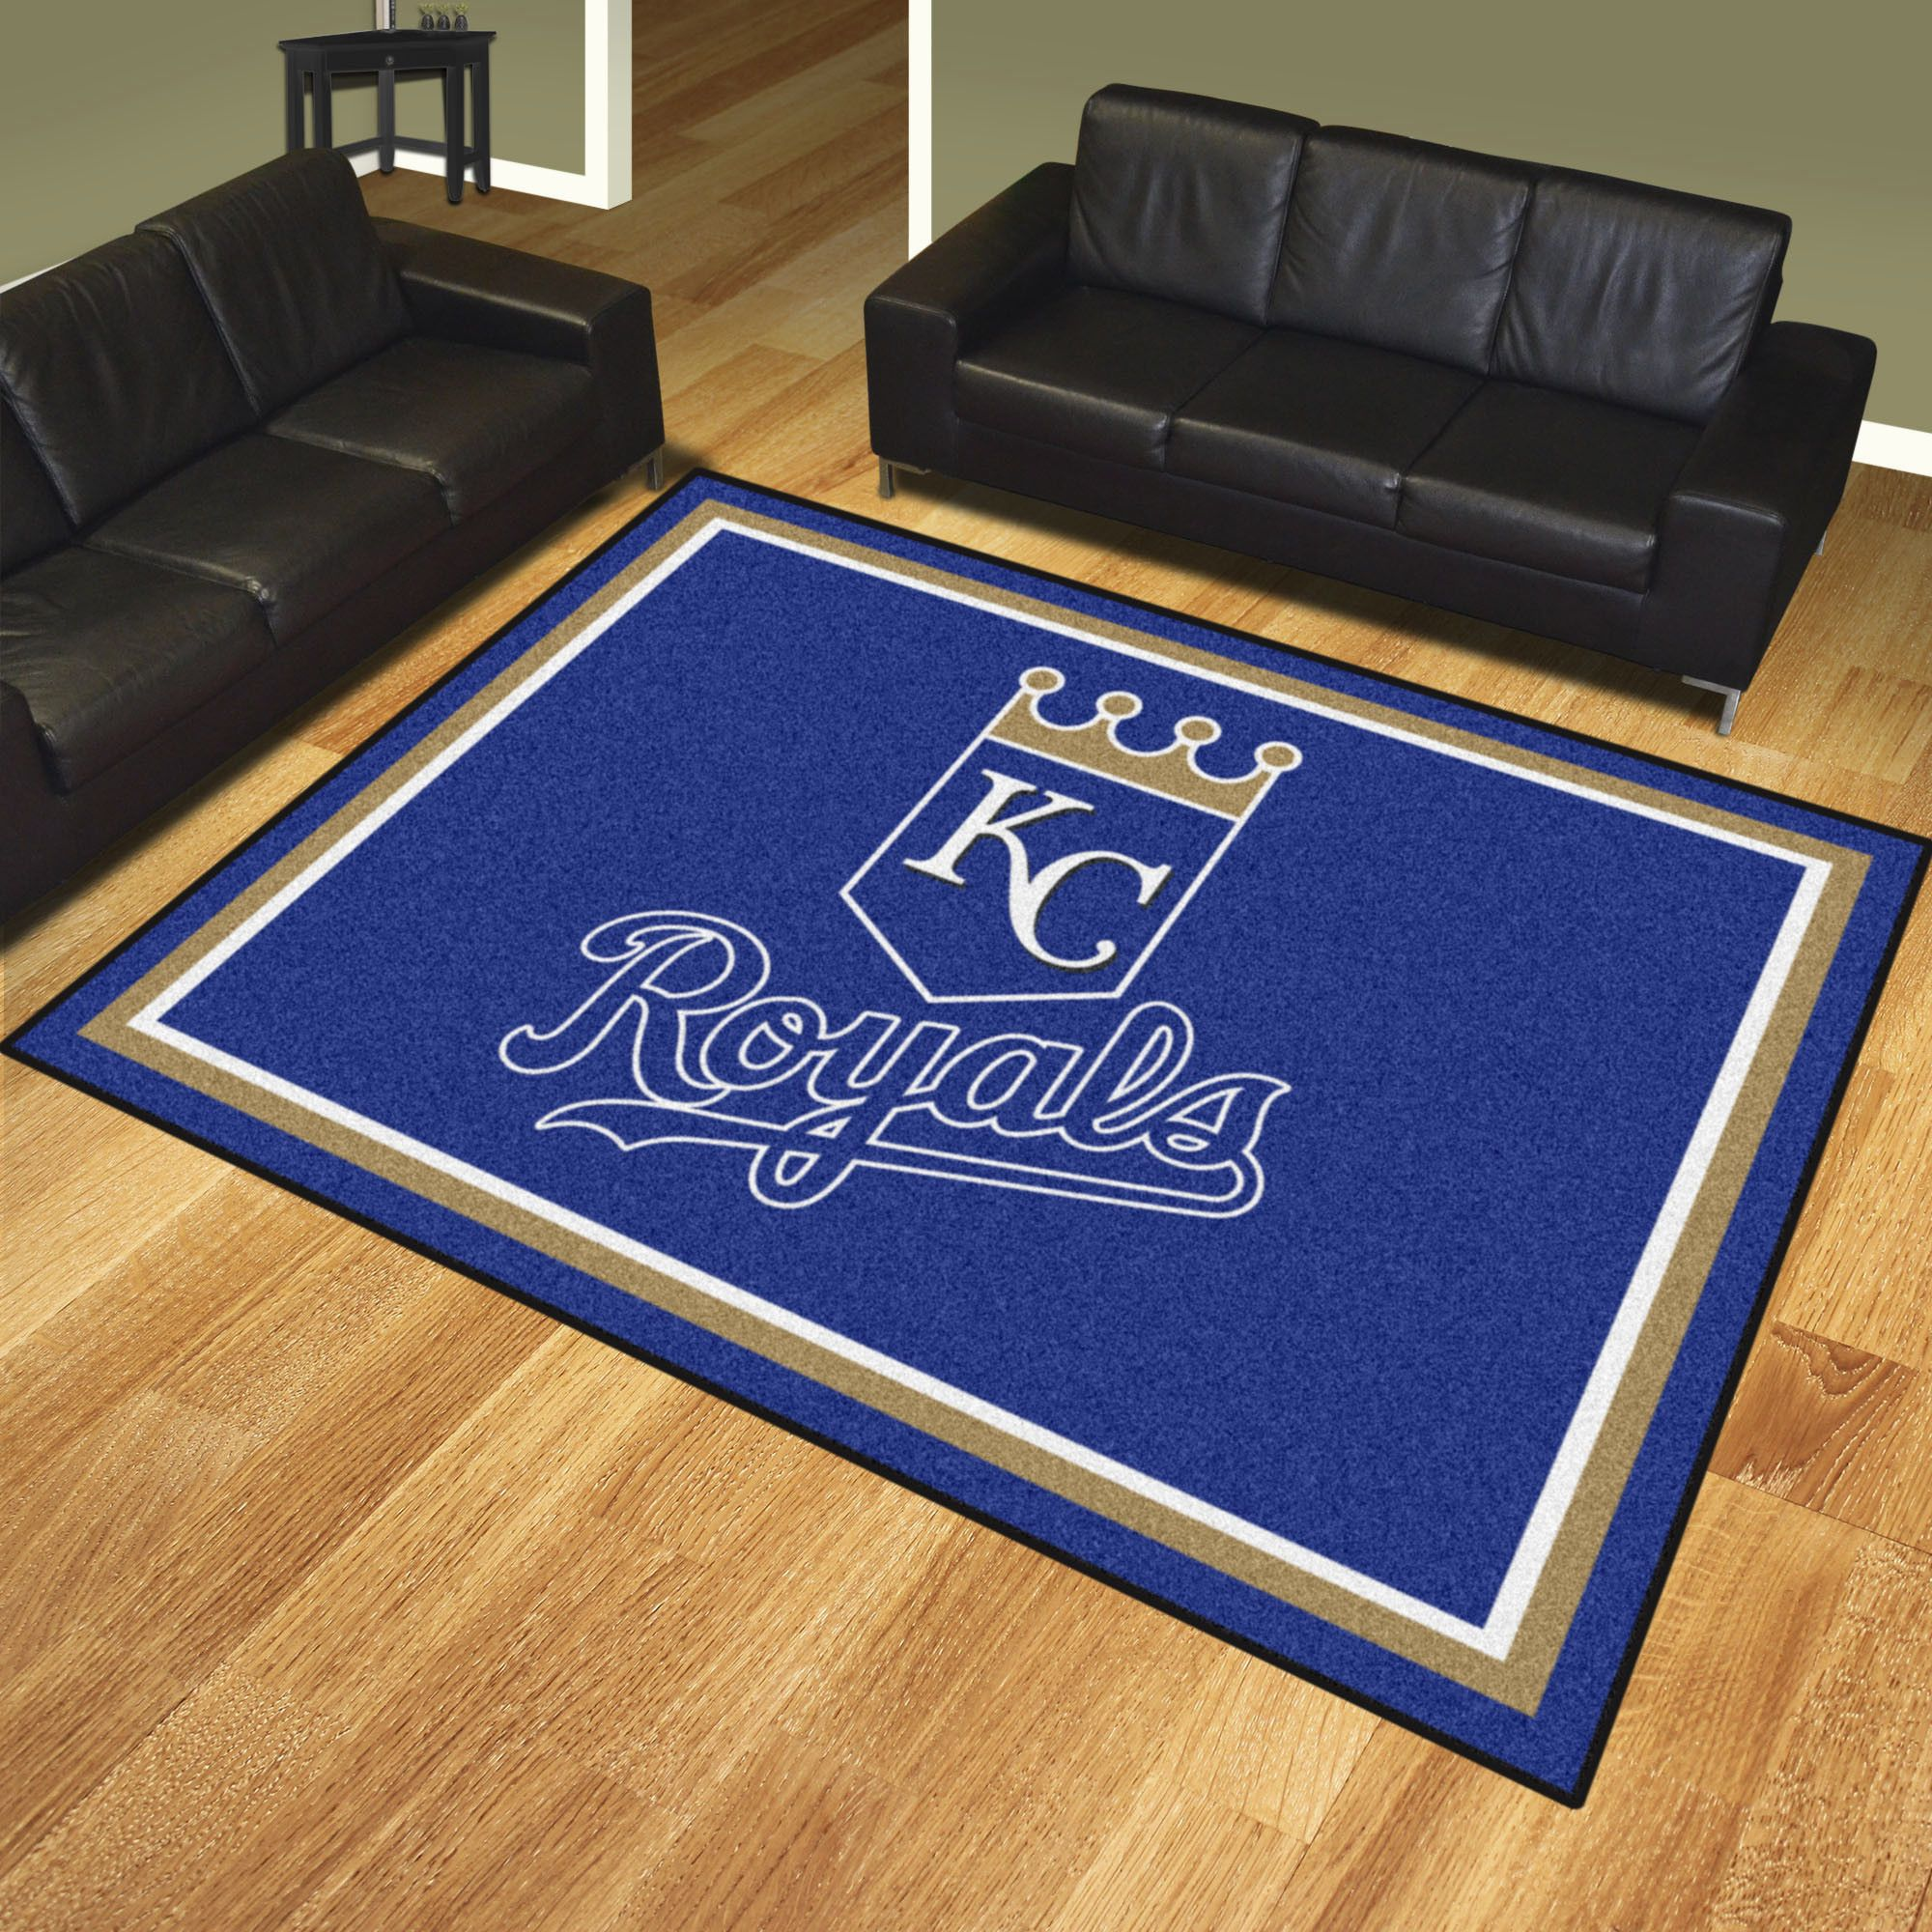 "Kansas City Royals 8x10 Rug - Show your team pride and add style to your tailgating party with Sports Licensing Solutions area rugs. Made in U.S.A. 100% nylon carpet and non-skid Duragon(R) latex backing. Officially licensed and chromojet printed in true team colors.FANMATS Series: RUG8X10Team Series: MLB - Kansas City RoyalsProduct Dimensions: 87""x117""Shipping Dimensions: 35""x24""x7"". Gifts > Licensed Gifts > Mlb > Kansas City Royals. Weight: 33.00"